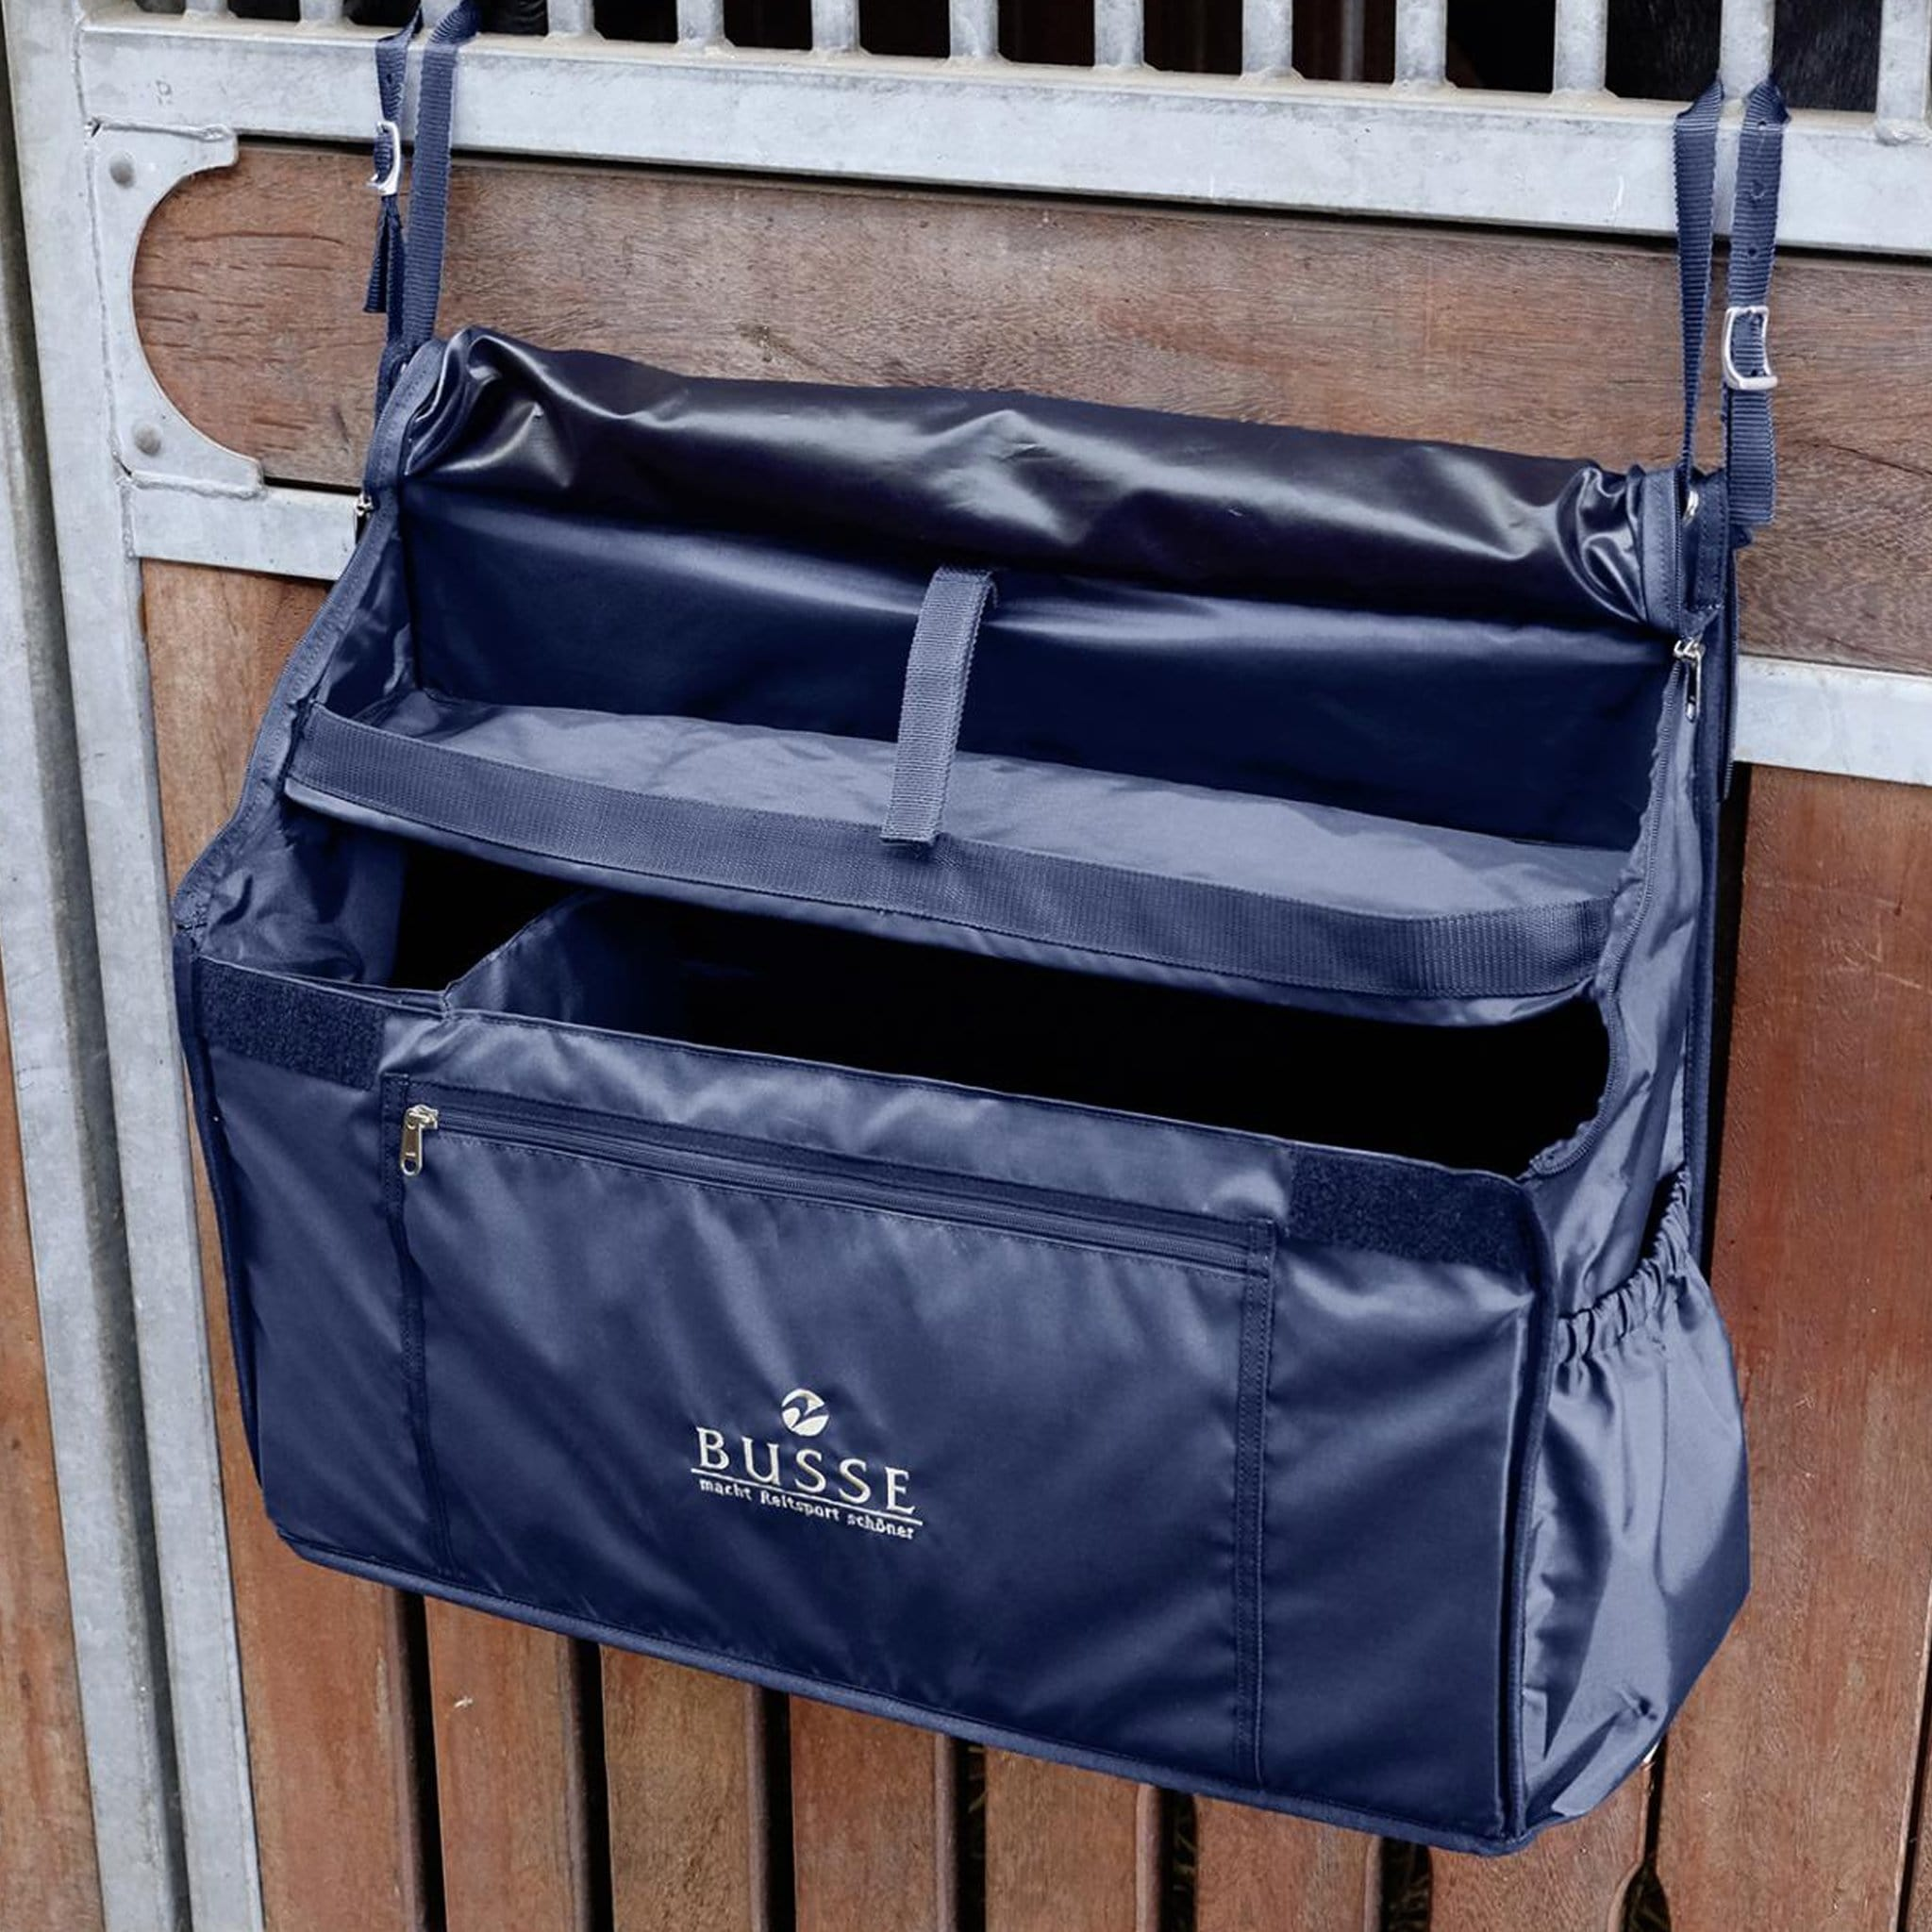 Busse Rio Hanging Stable Bag 729020